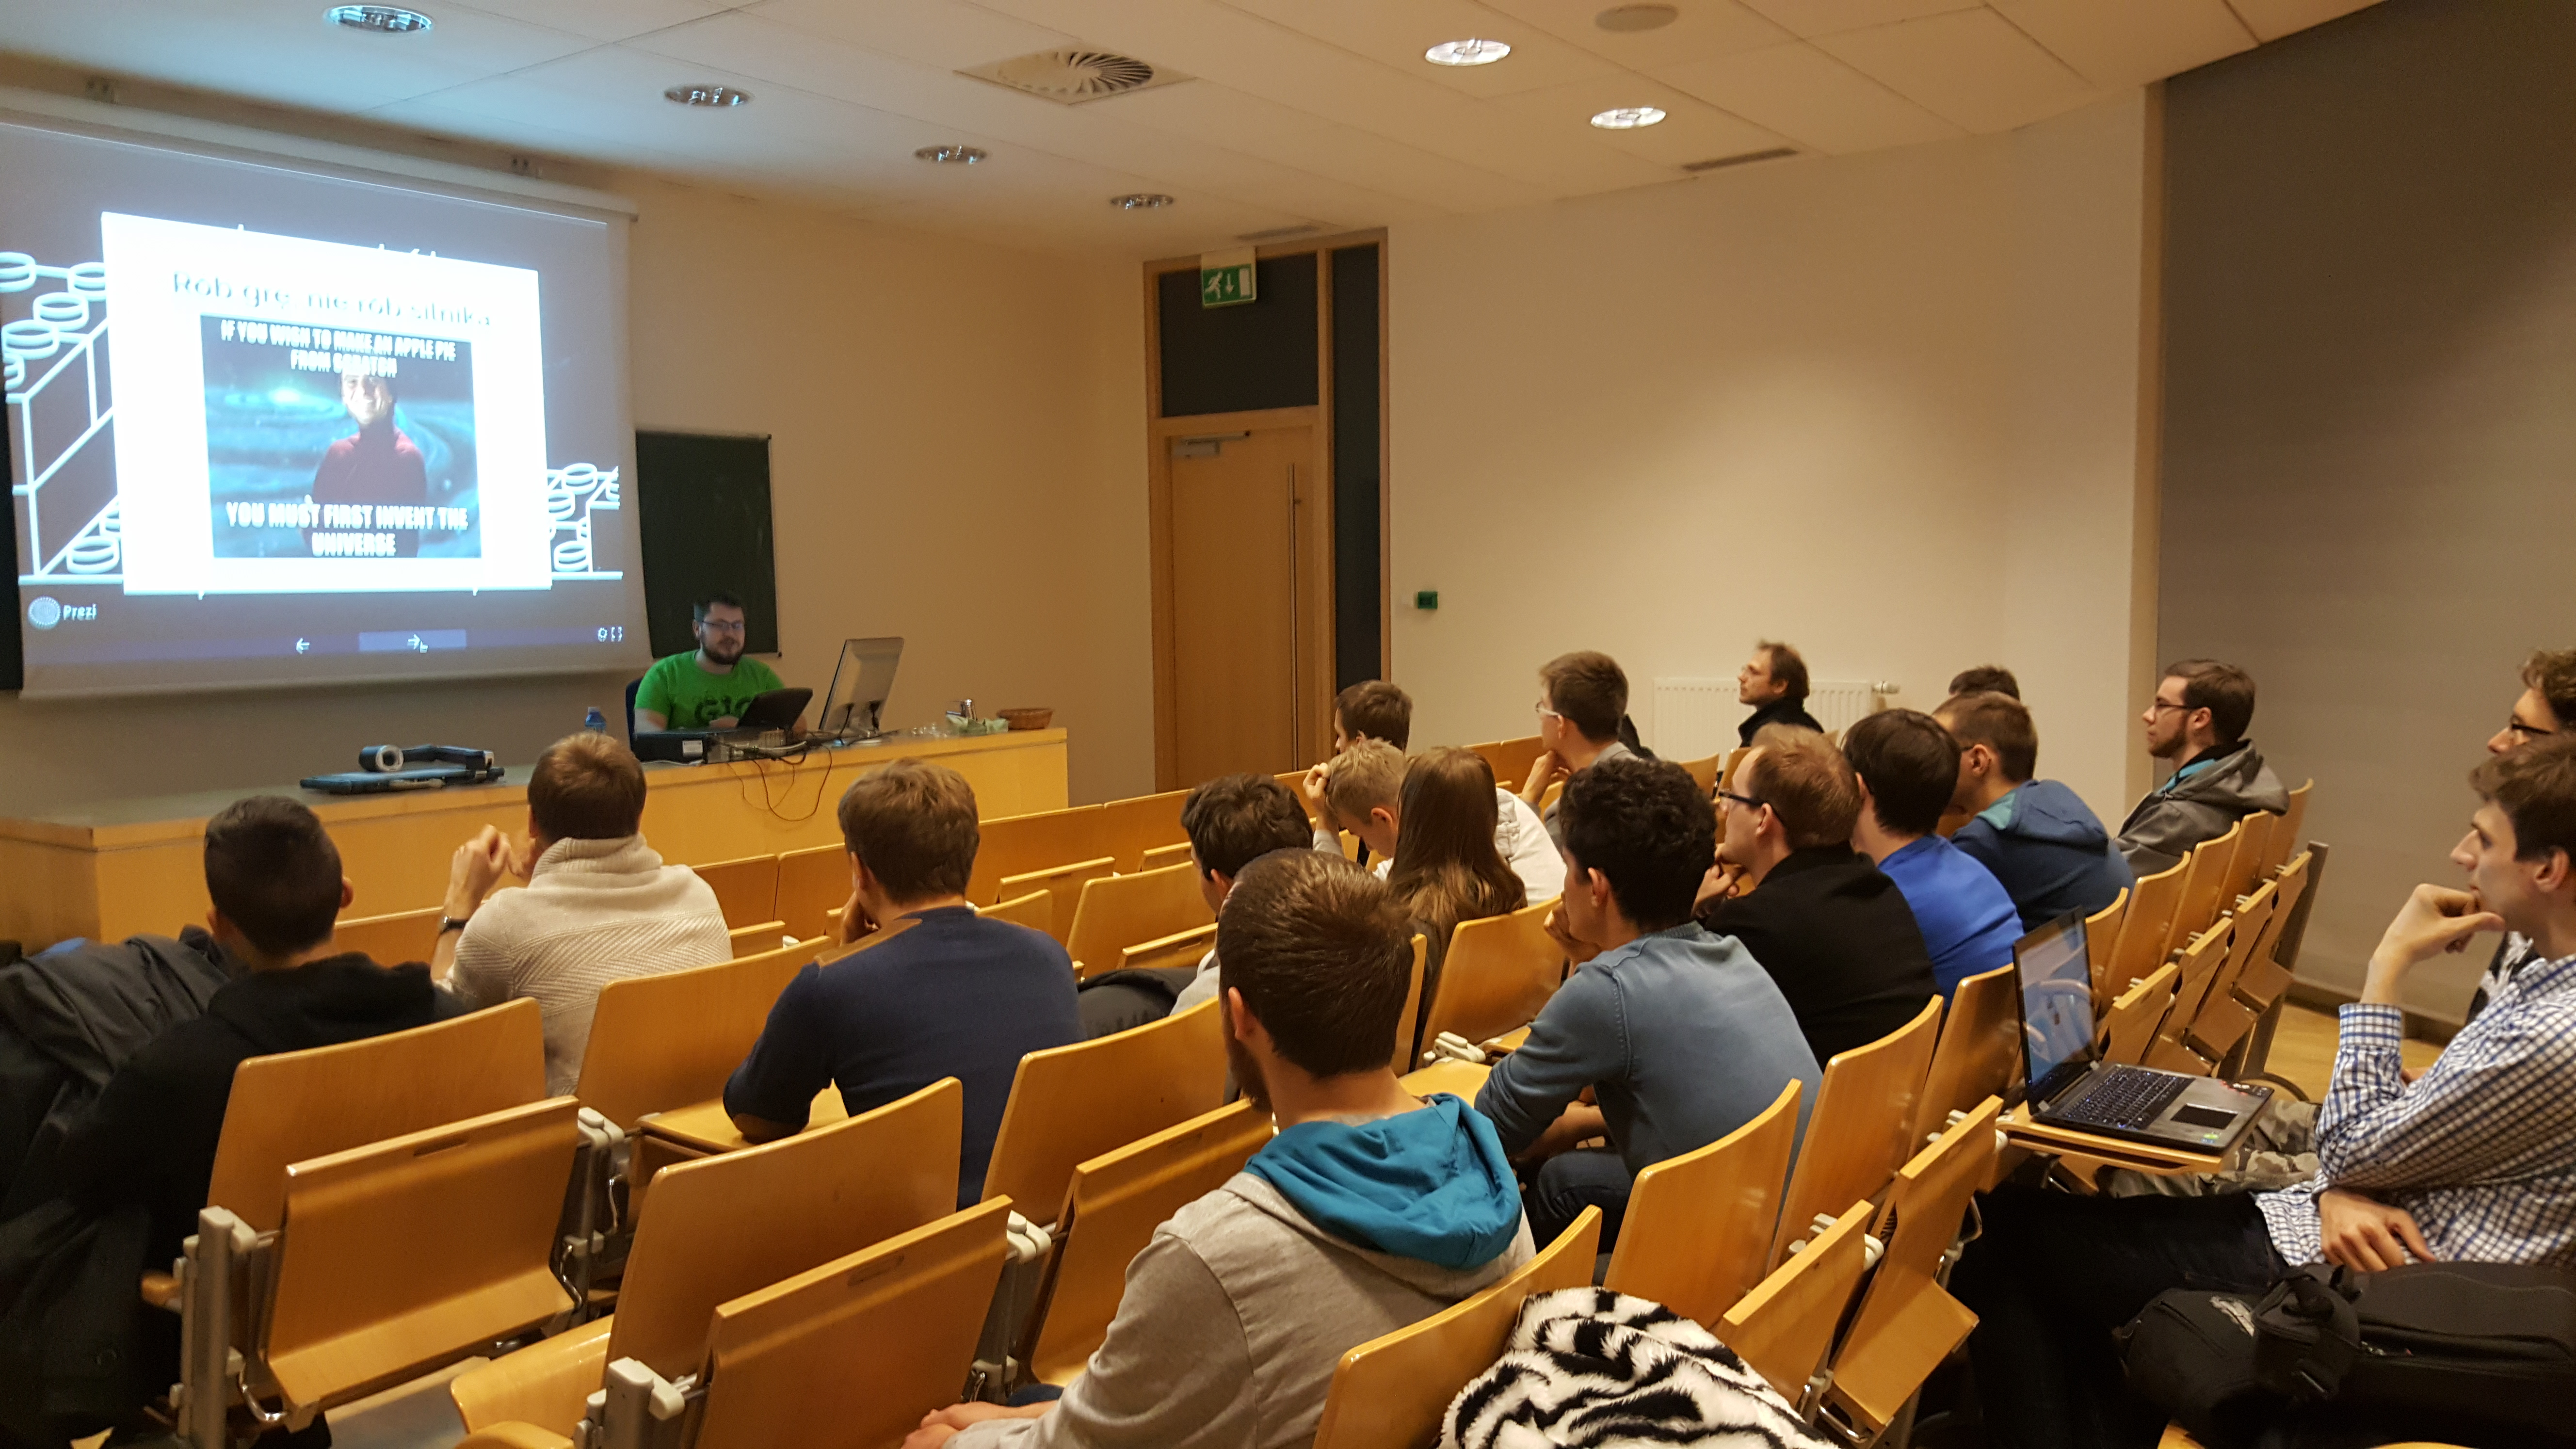 Lectures at the Poznan University of Technology